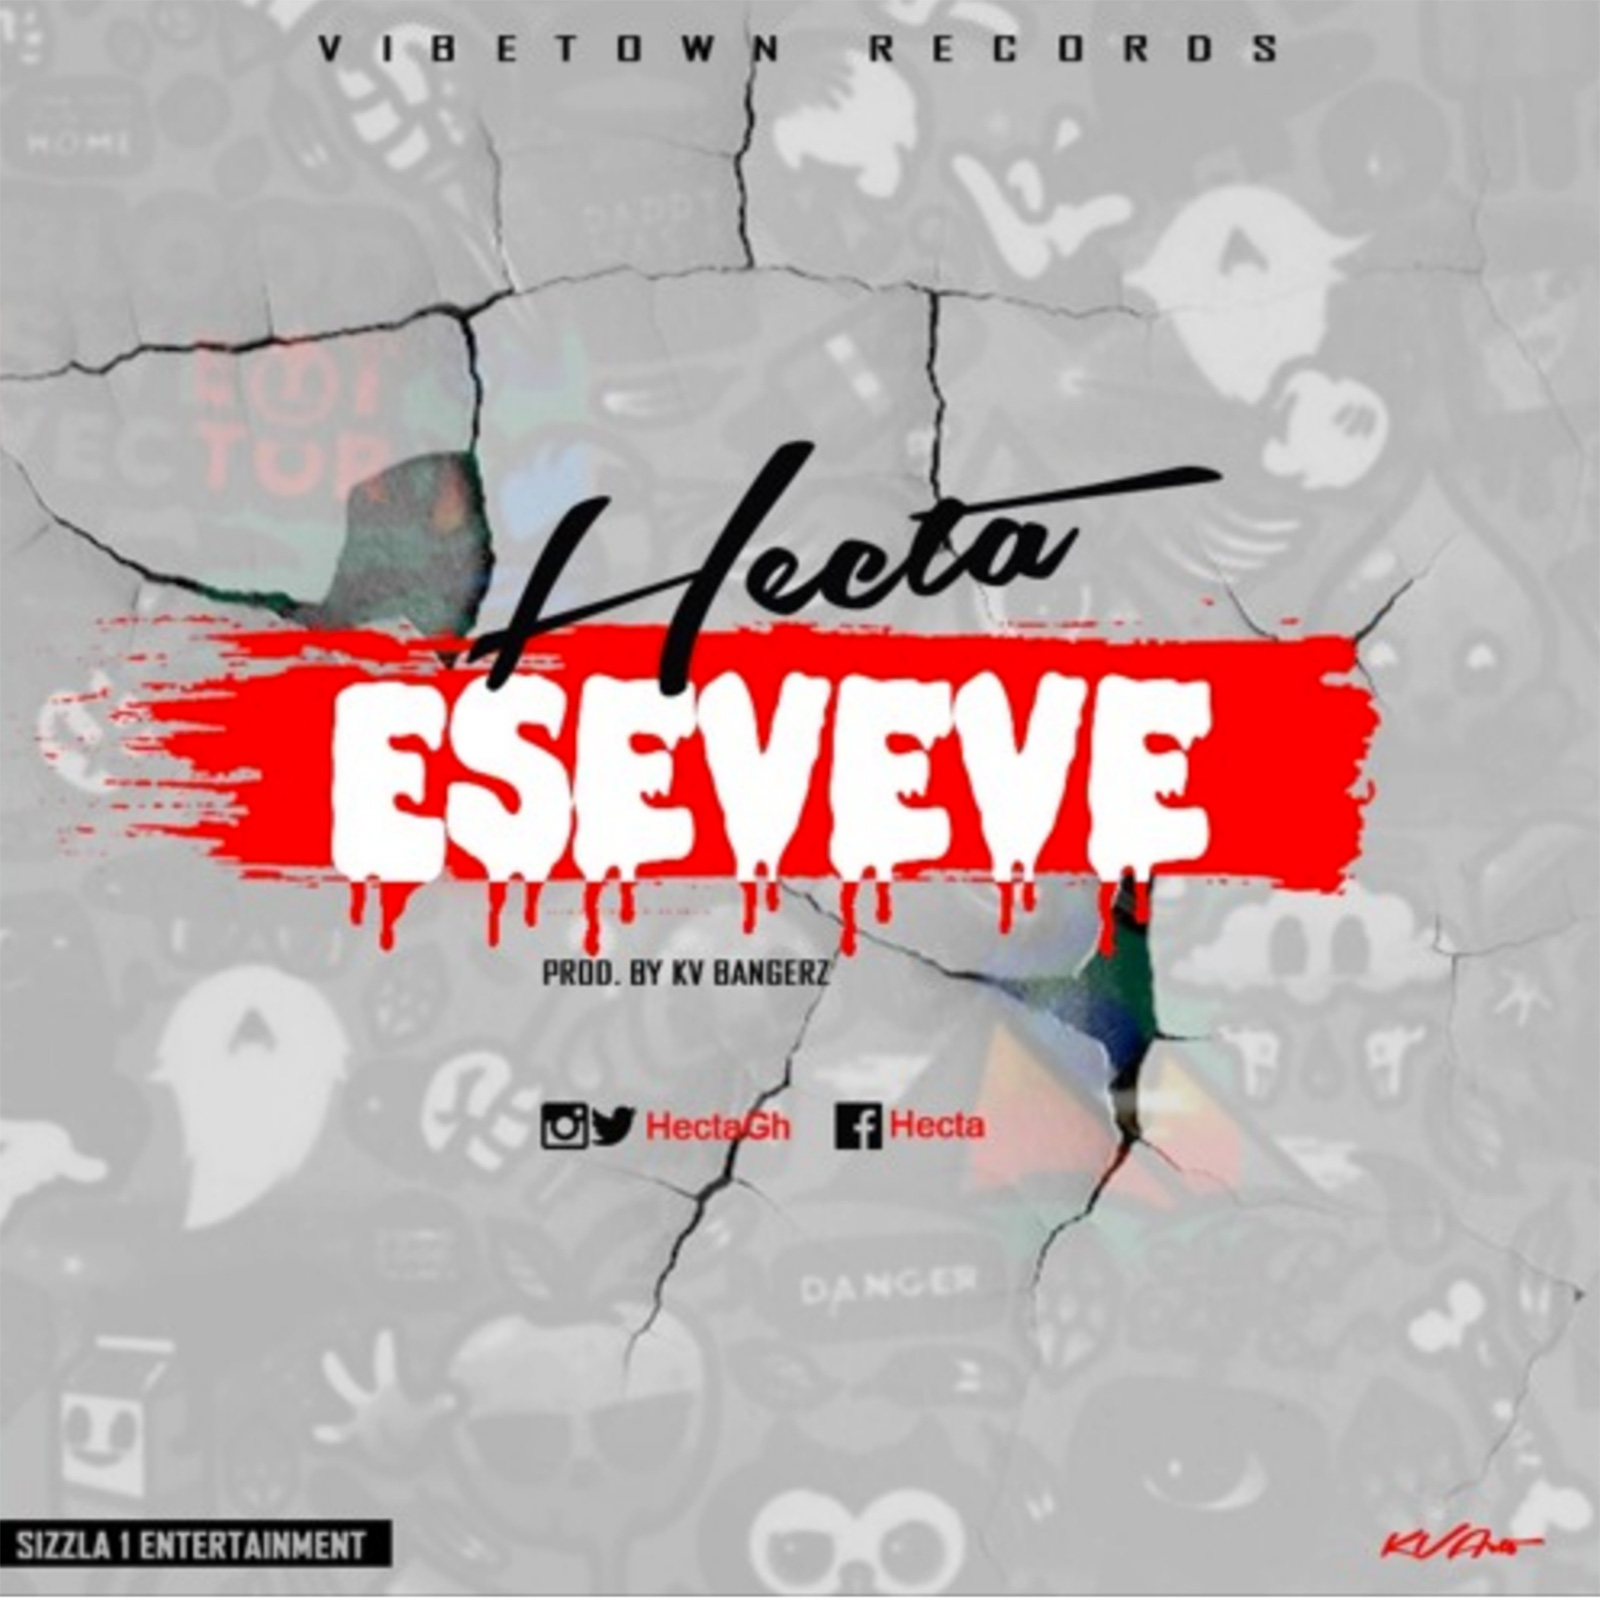 Eseveve by Hecta